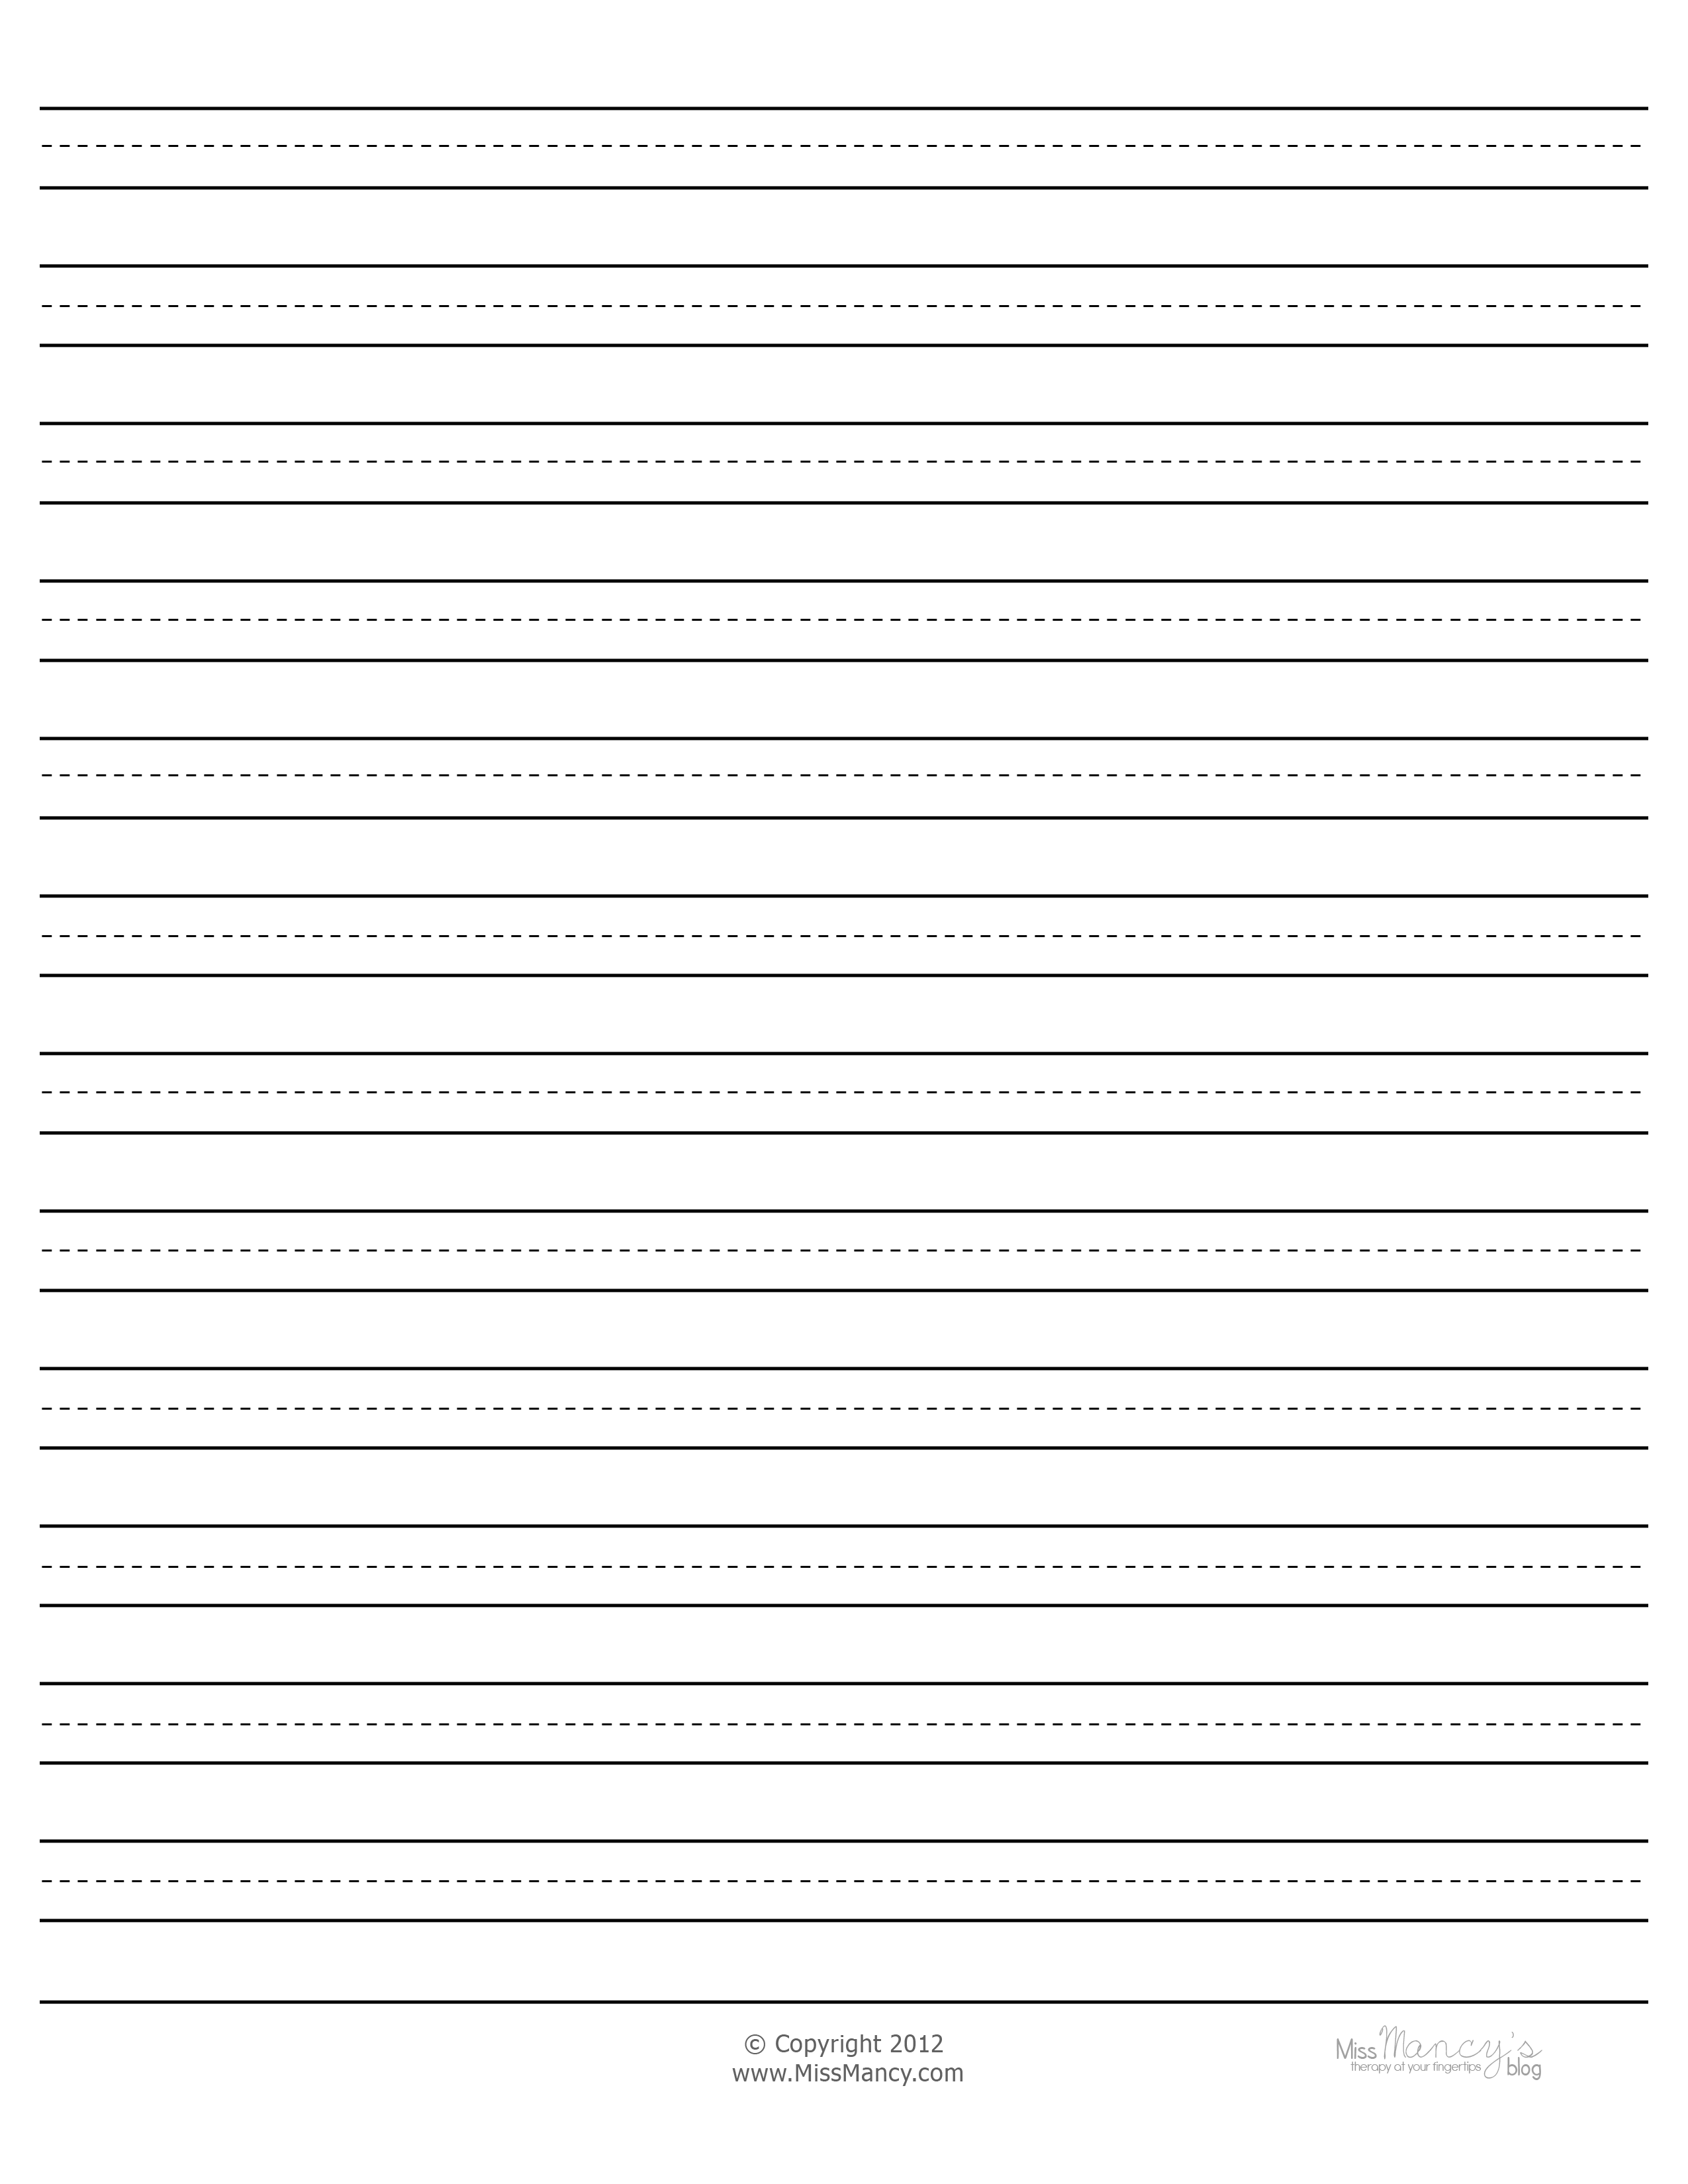 Paper With Thick Lines Dashes In Between